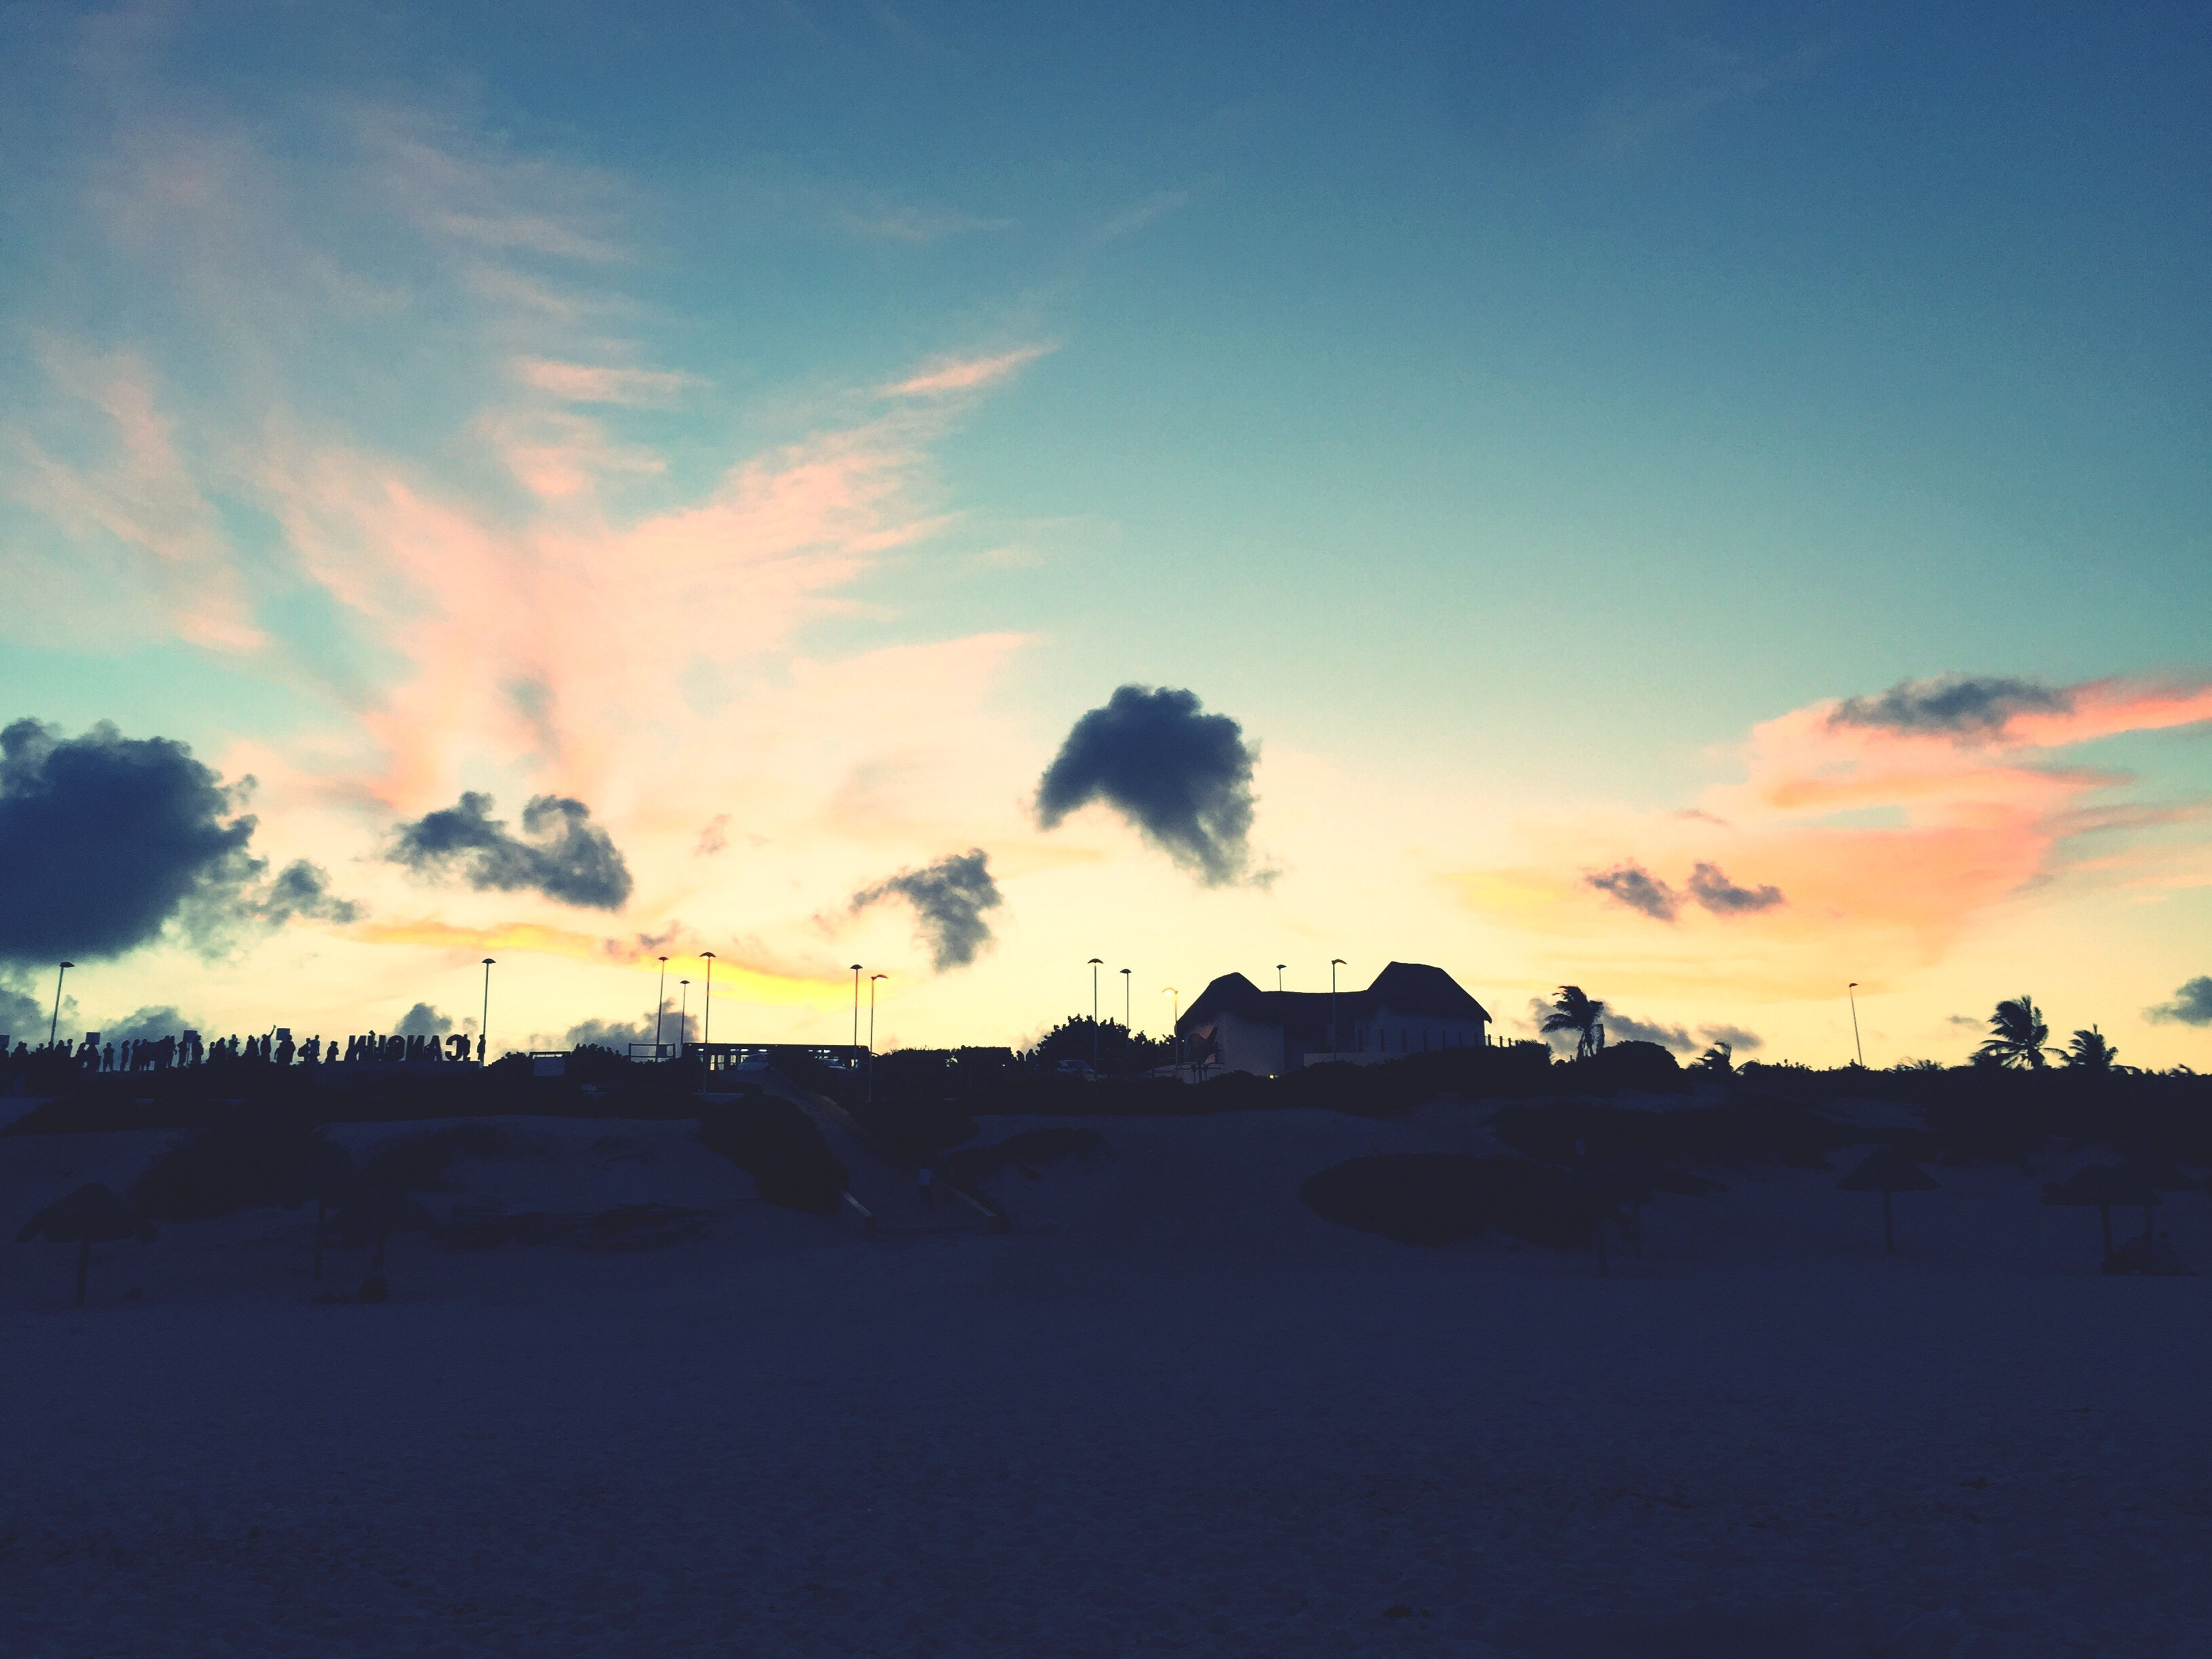 house, sunset, silhouette, sky, landscape, built structure, architecture, tranquil scene, scenics, building exterior, dusk, tranquility, cloud - sky, beauty in nature, dark, cloud, nature, outdoors, town, calm, non-urban scene, no people, remote, majestic, cloudy